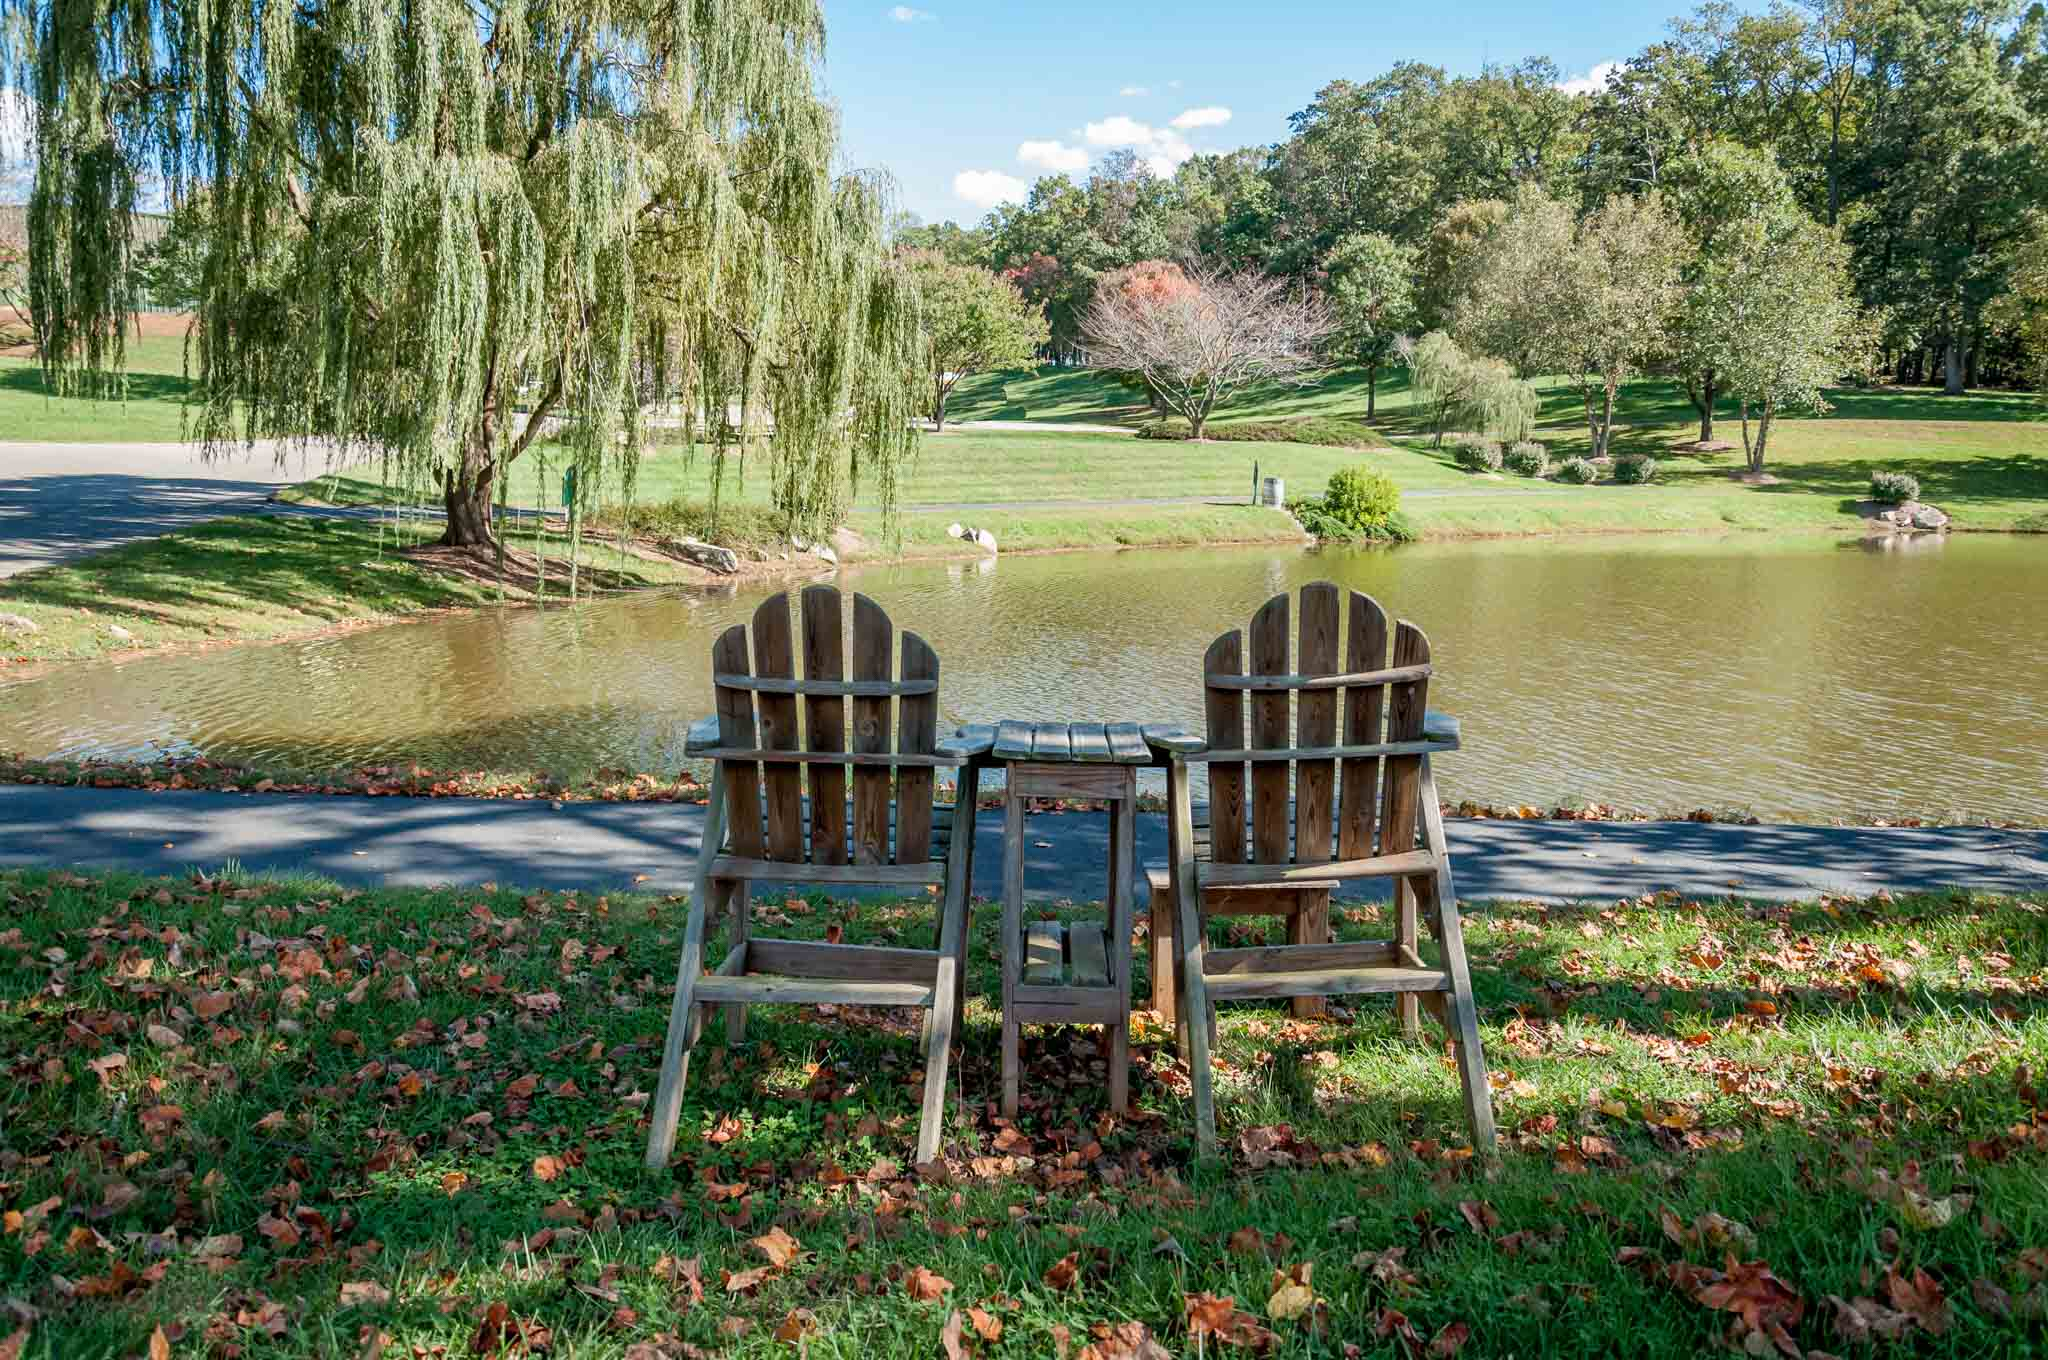 Chairs beside a pond